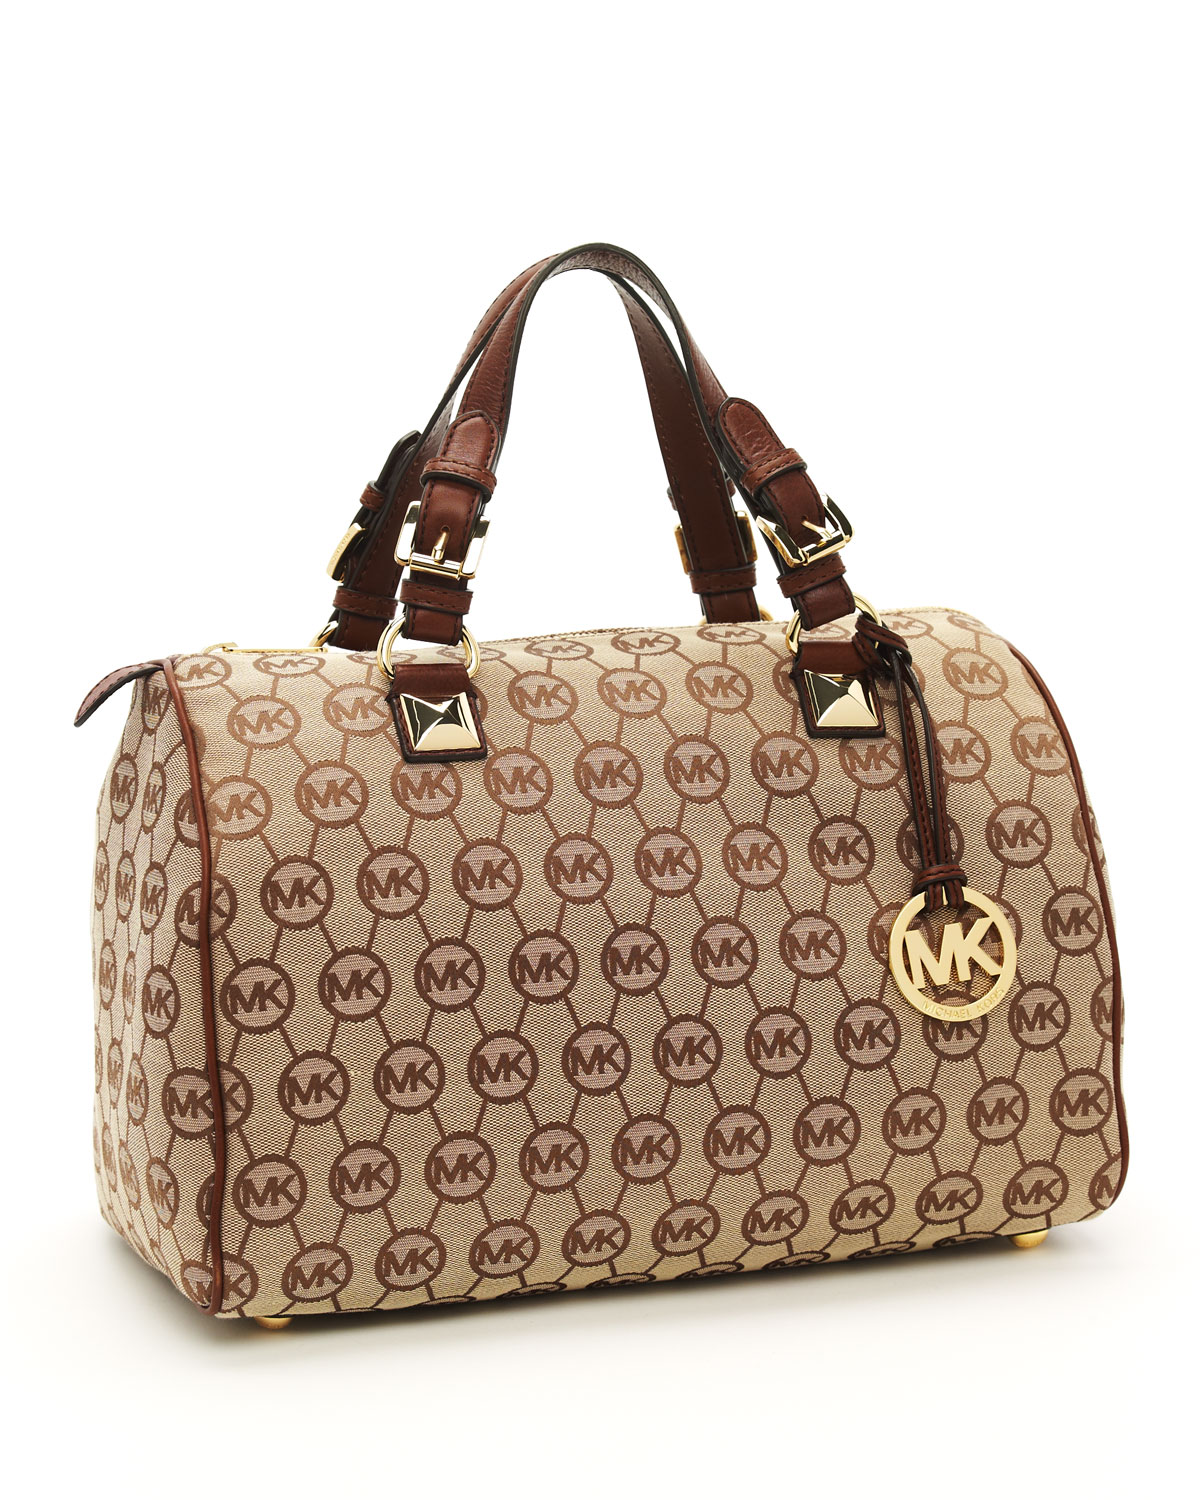 Gallery Previously Sold At Neiman Marcus Women S Michael Kors Grayson